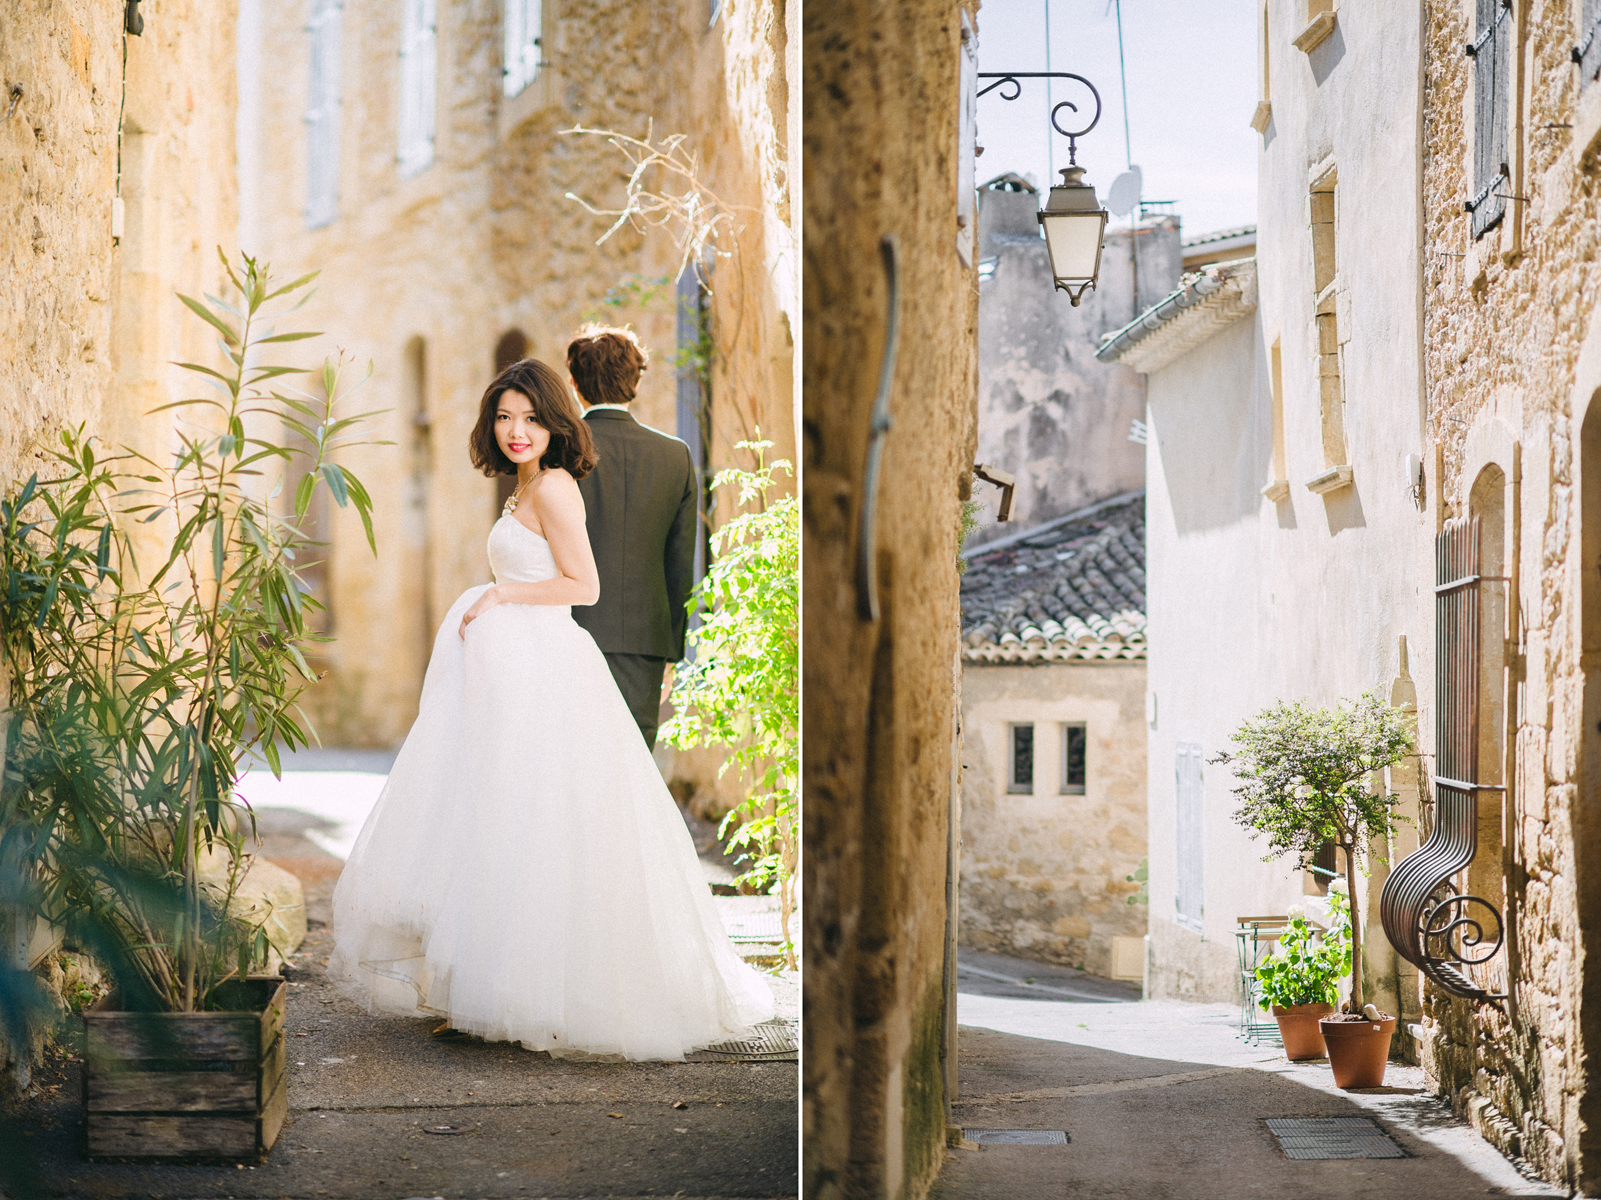 Boheme-Moon-Wedding-Photography-Taiwan-Pre-Wedding-Provence_10.jpg